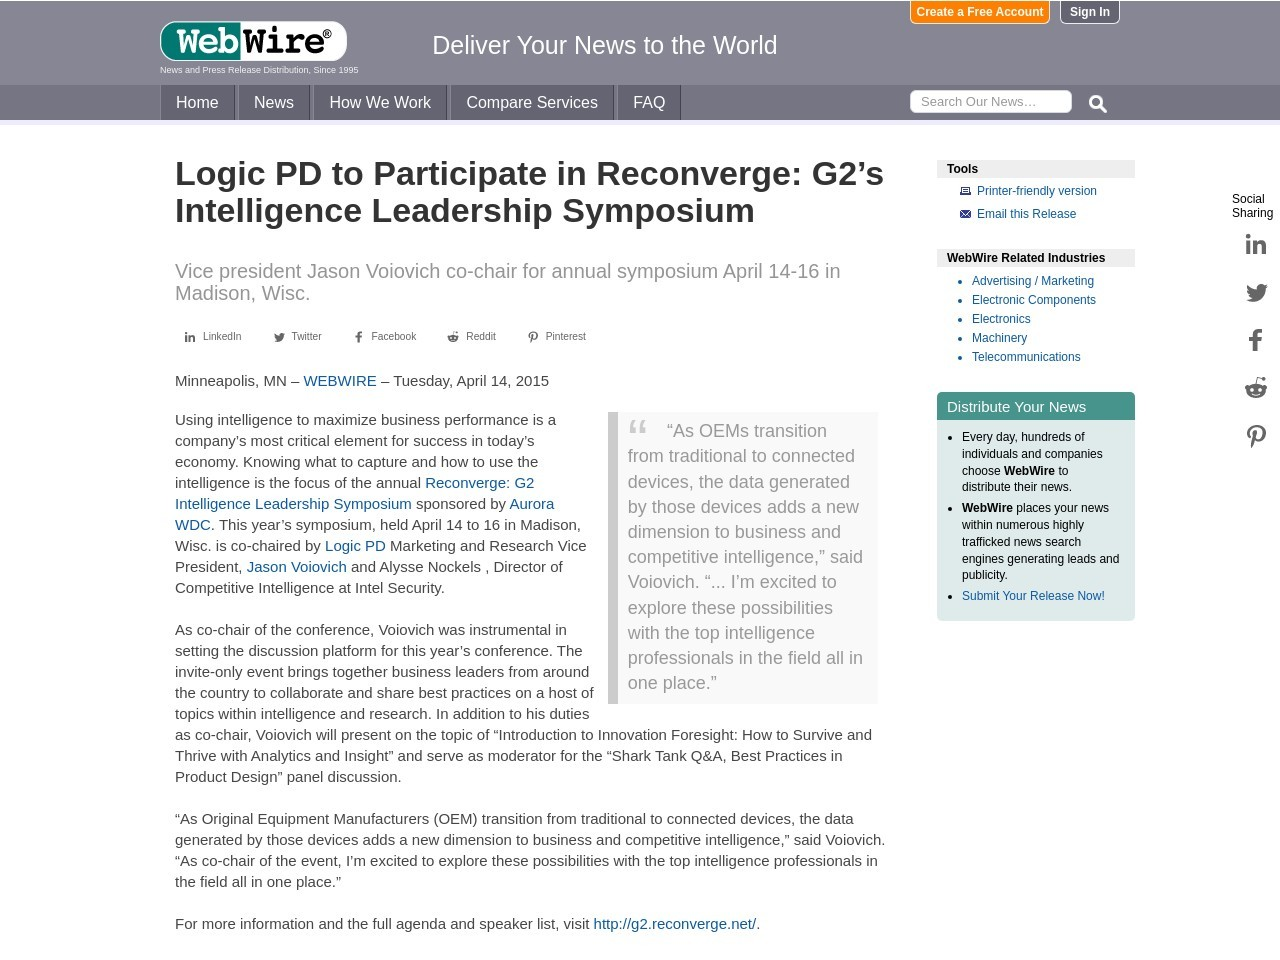 Logic PD to Participate in Reconverge: G2's Intelligence Leadership Symposium